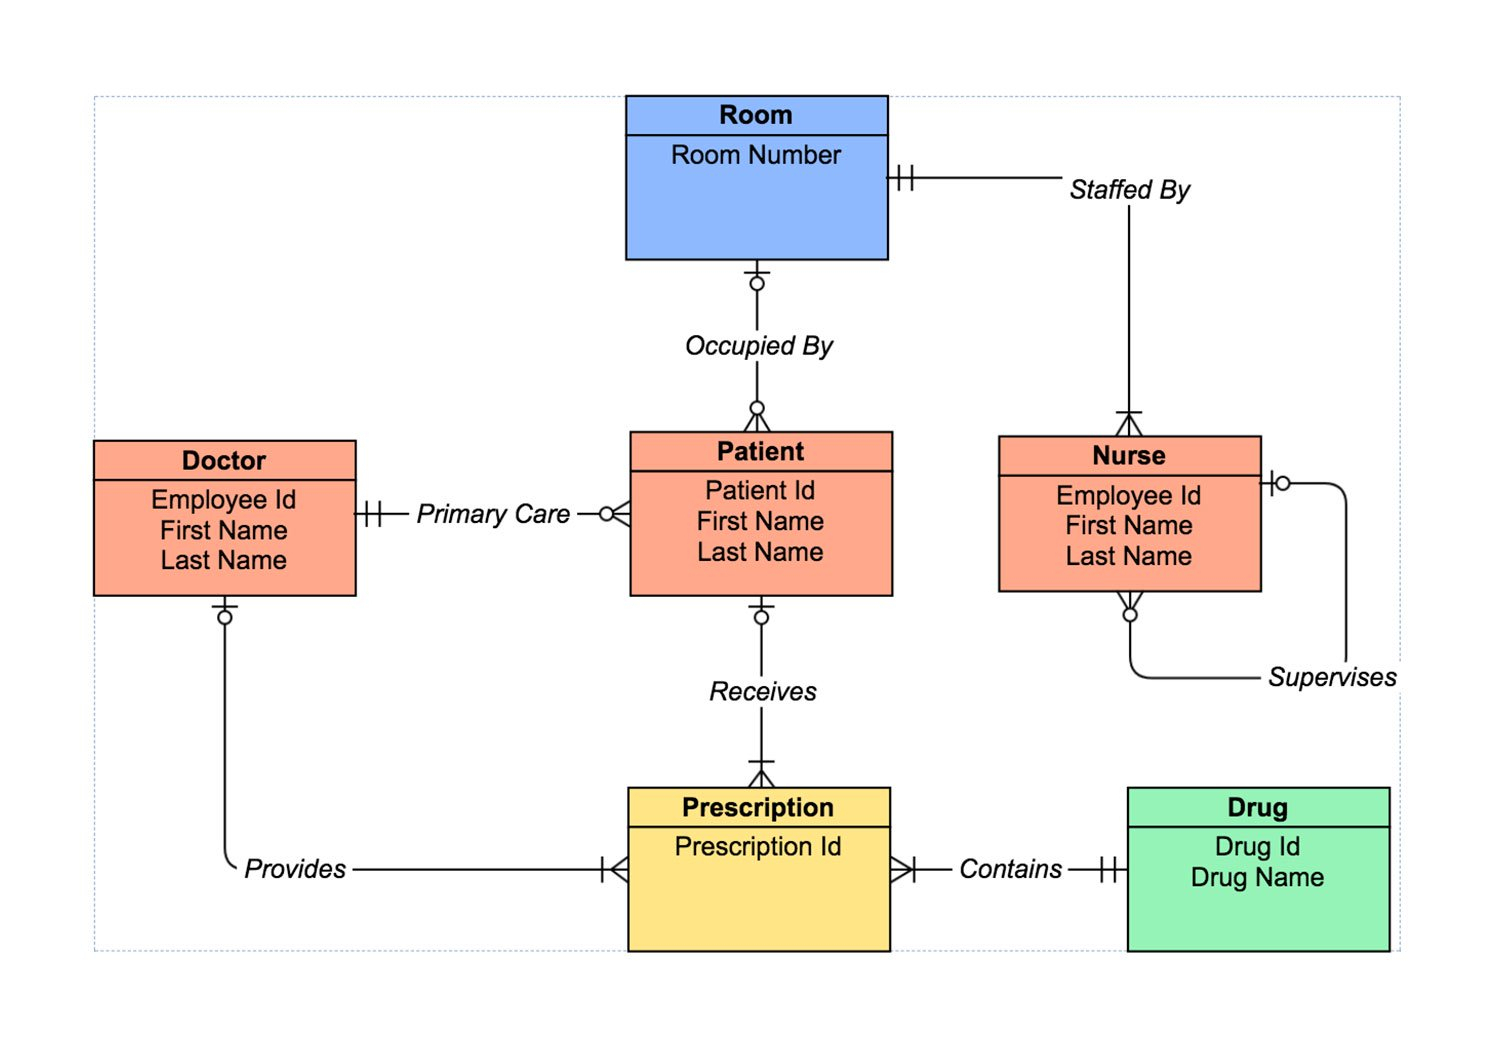 Draw Entity Relationship Diagrams Online | Er Diagram Tool with regard to Draw Database Schema